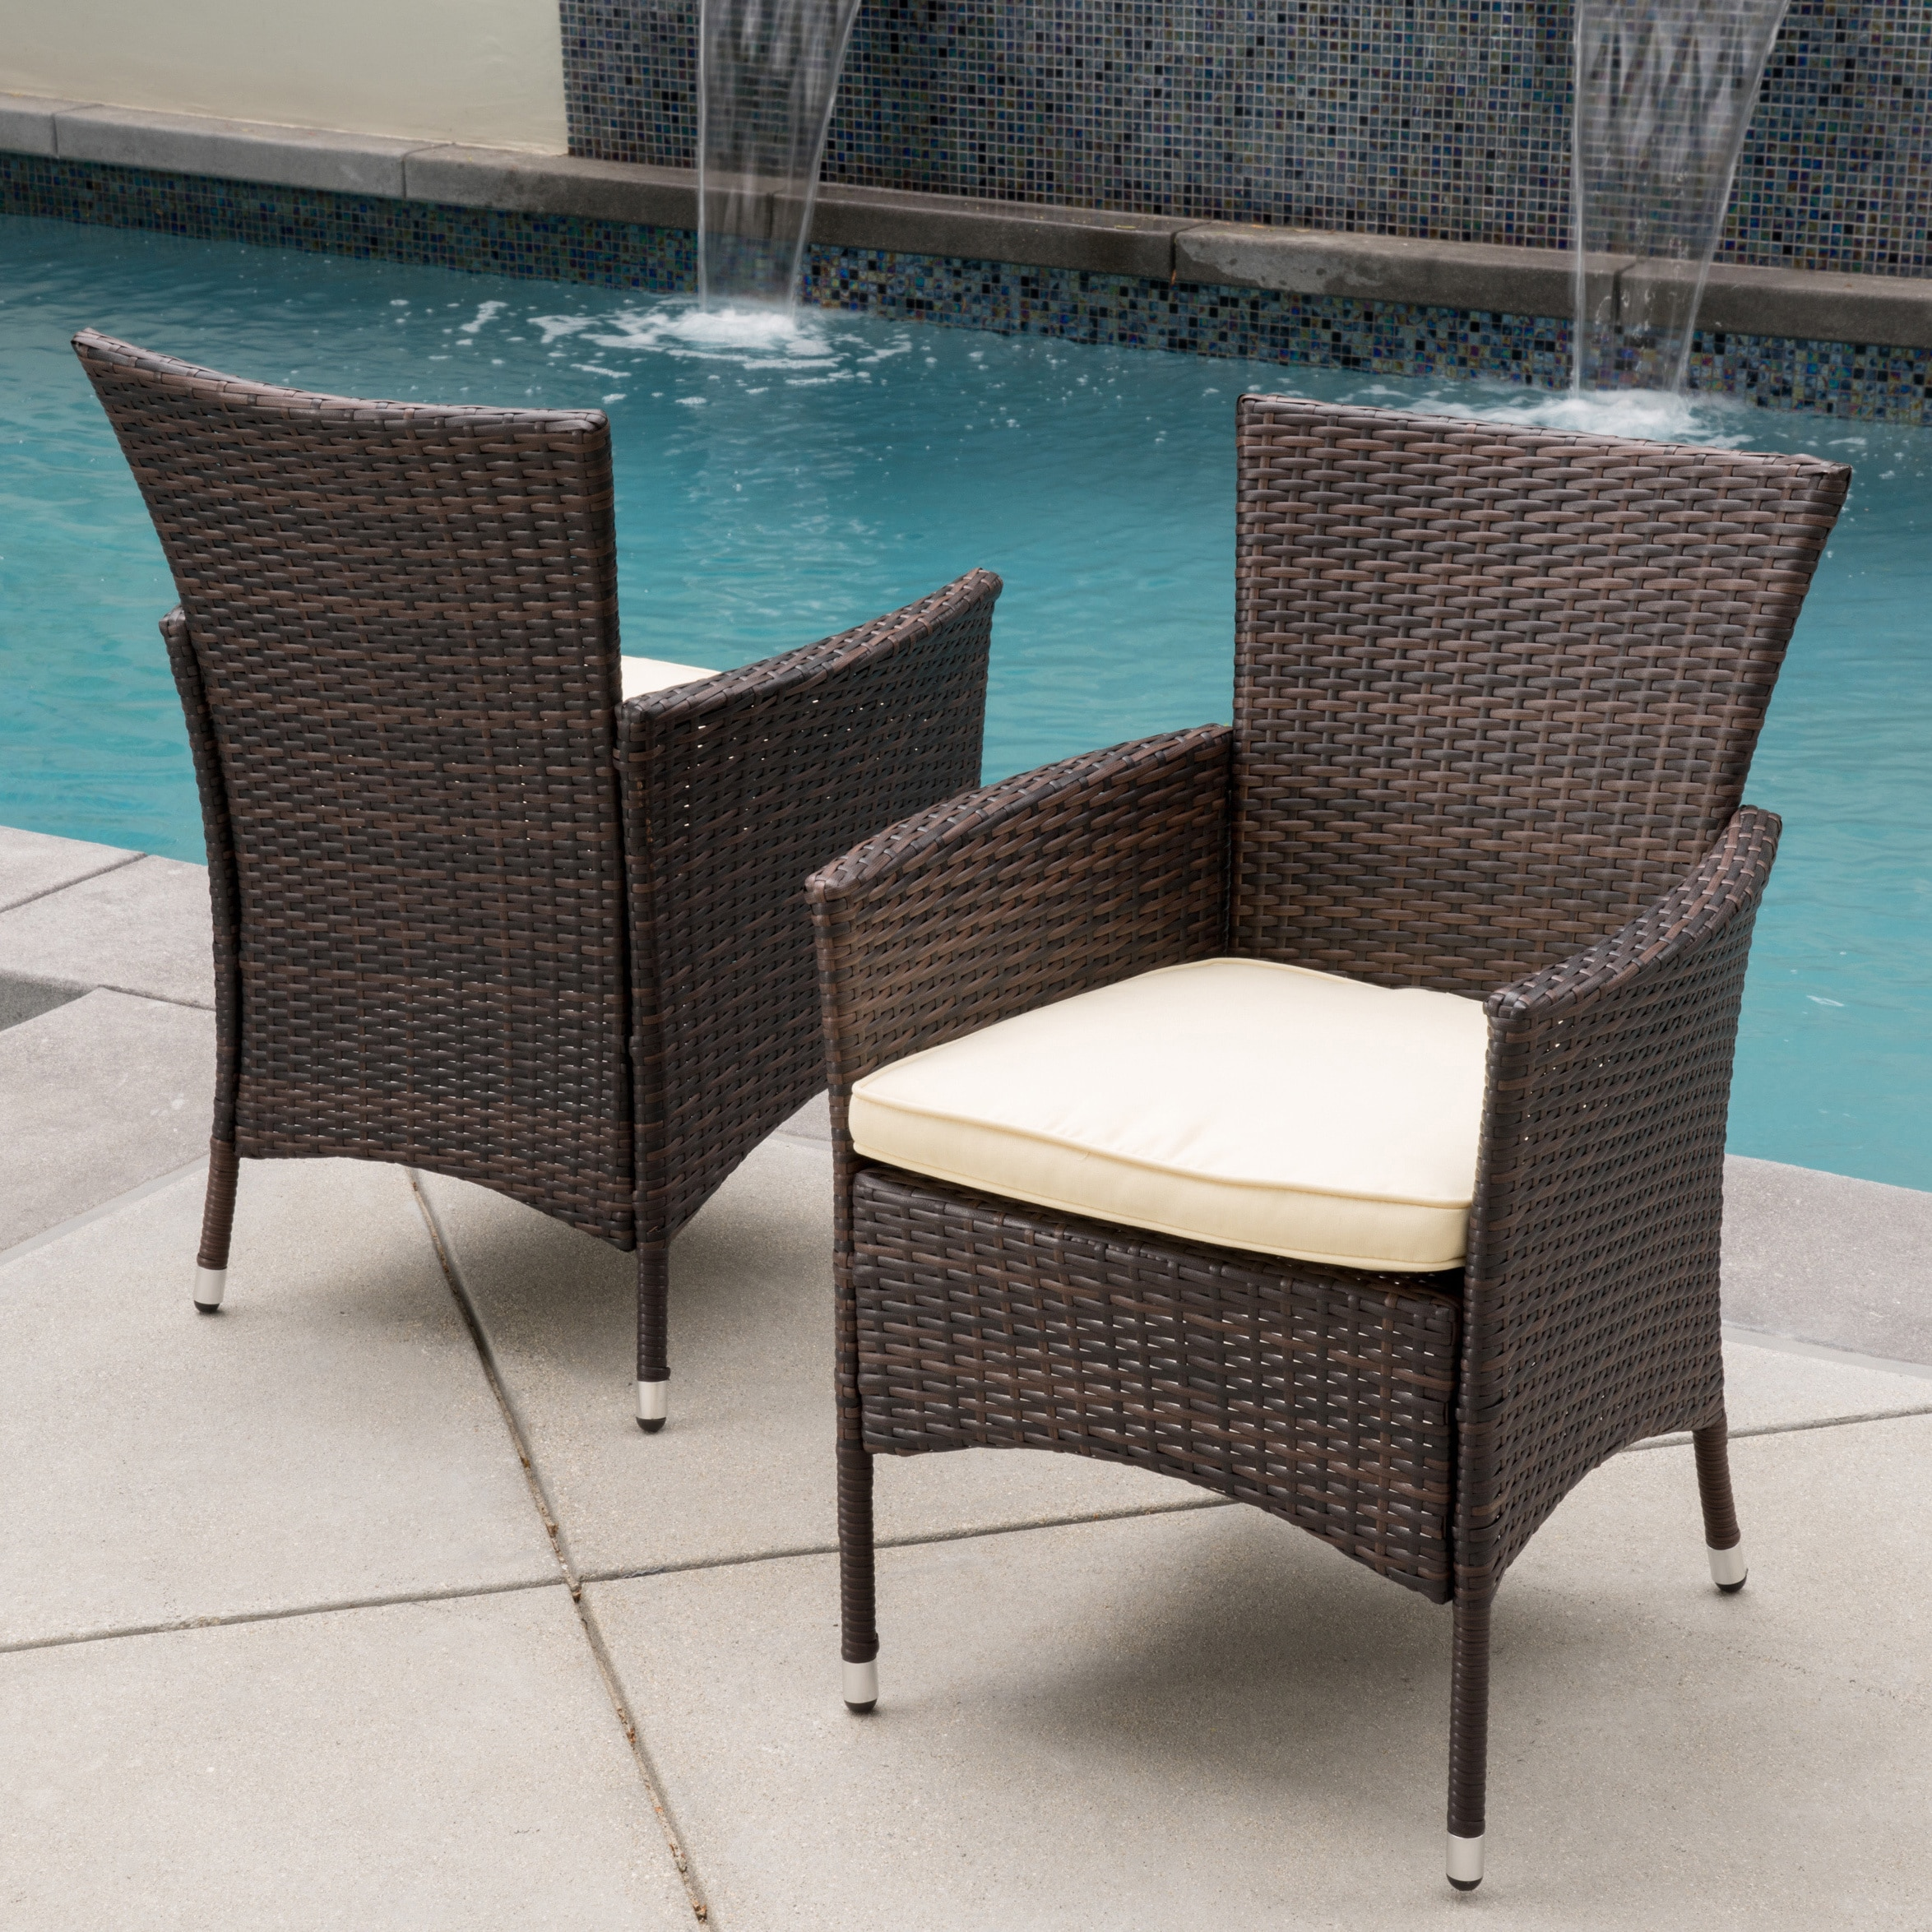 Outdoor Chair Set Malta Outdoor Wicker Dining Chair With Cushion By Christopher Knight Home Set Of 2